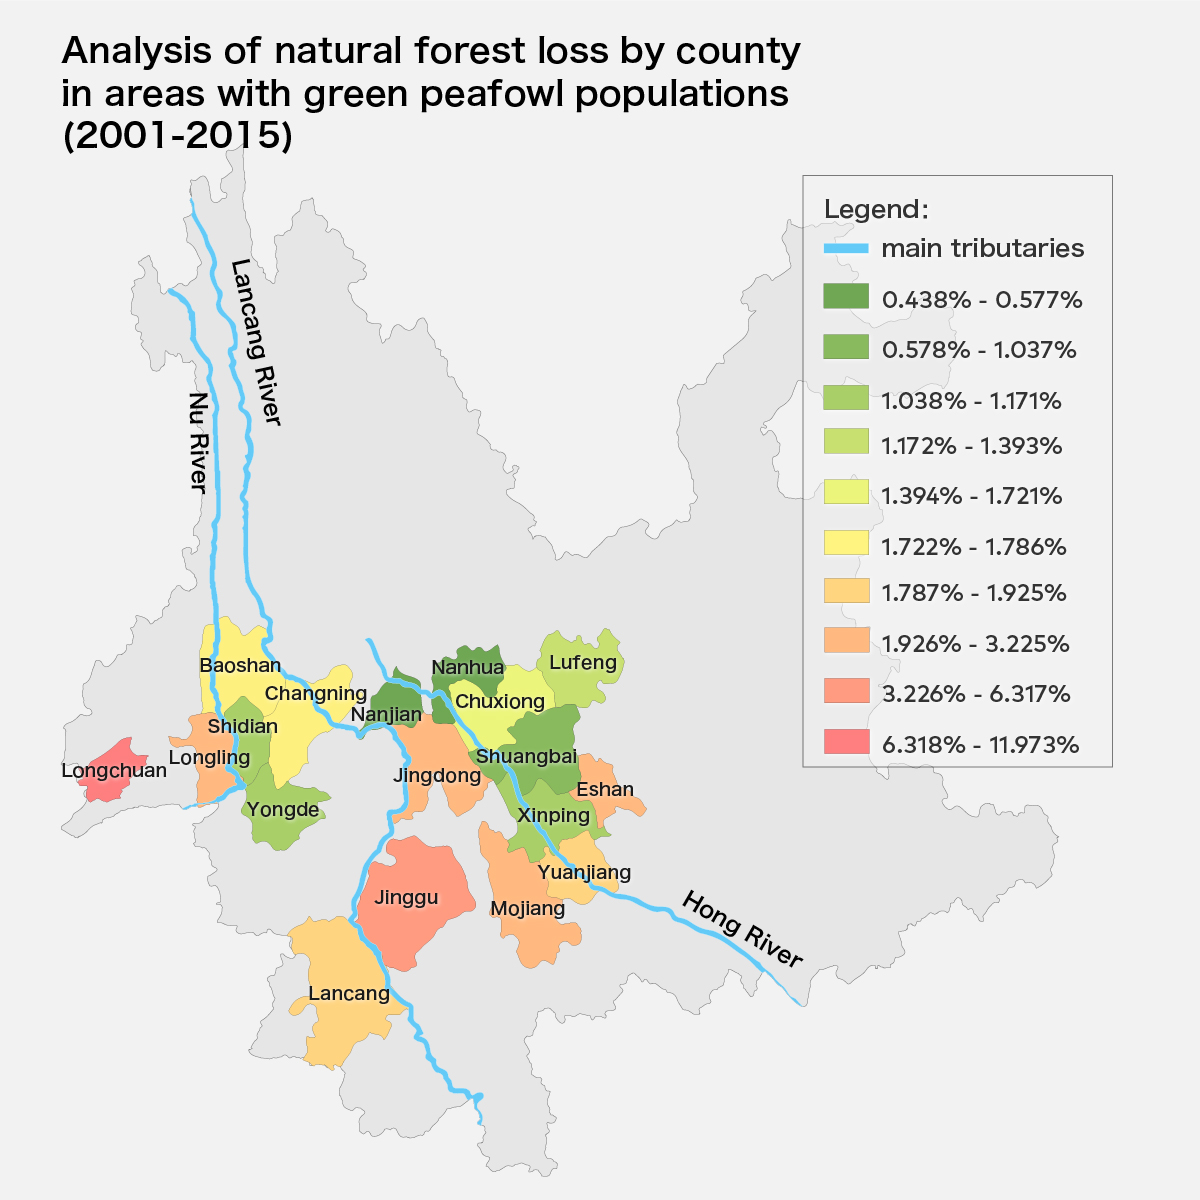 Map ii_Forest loss map_green peafowl